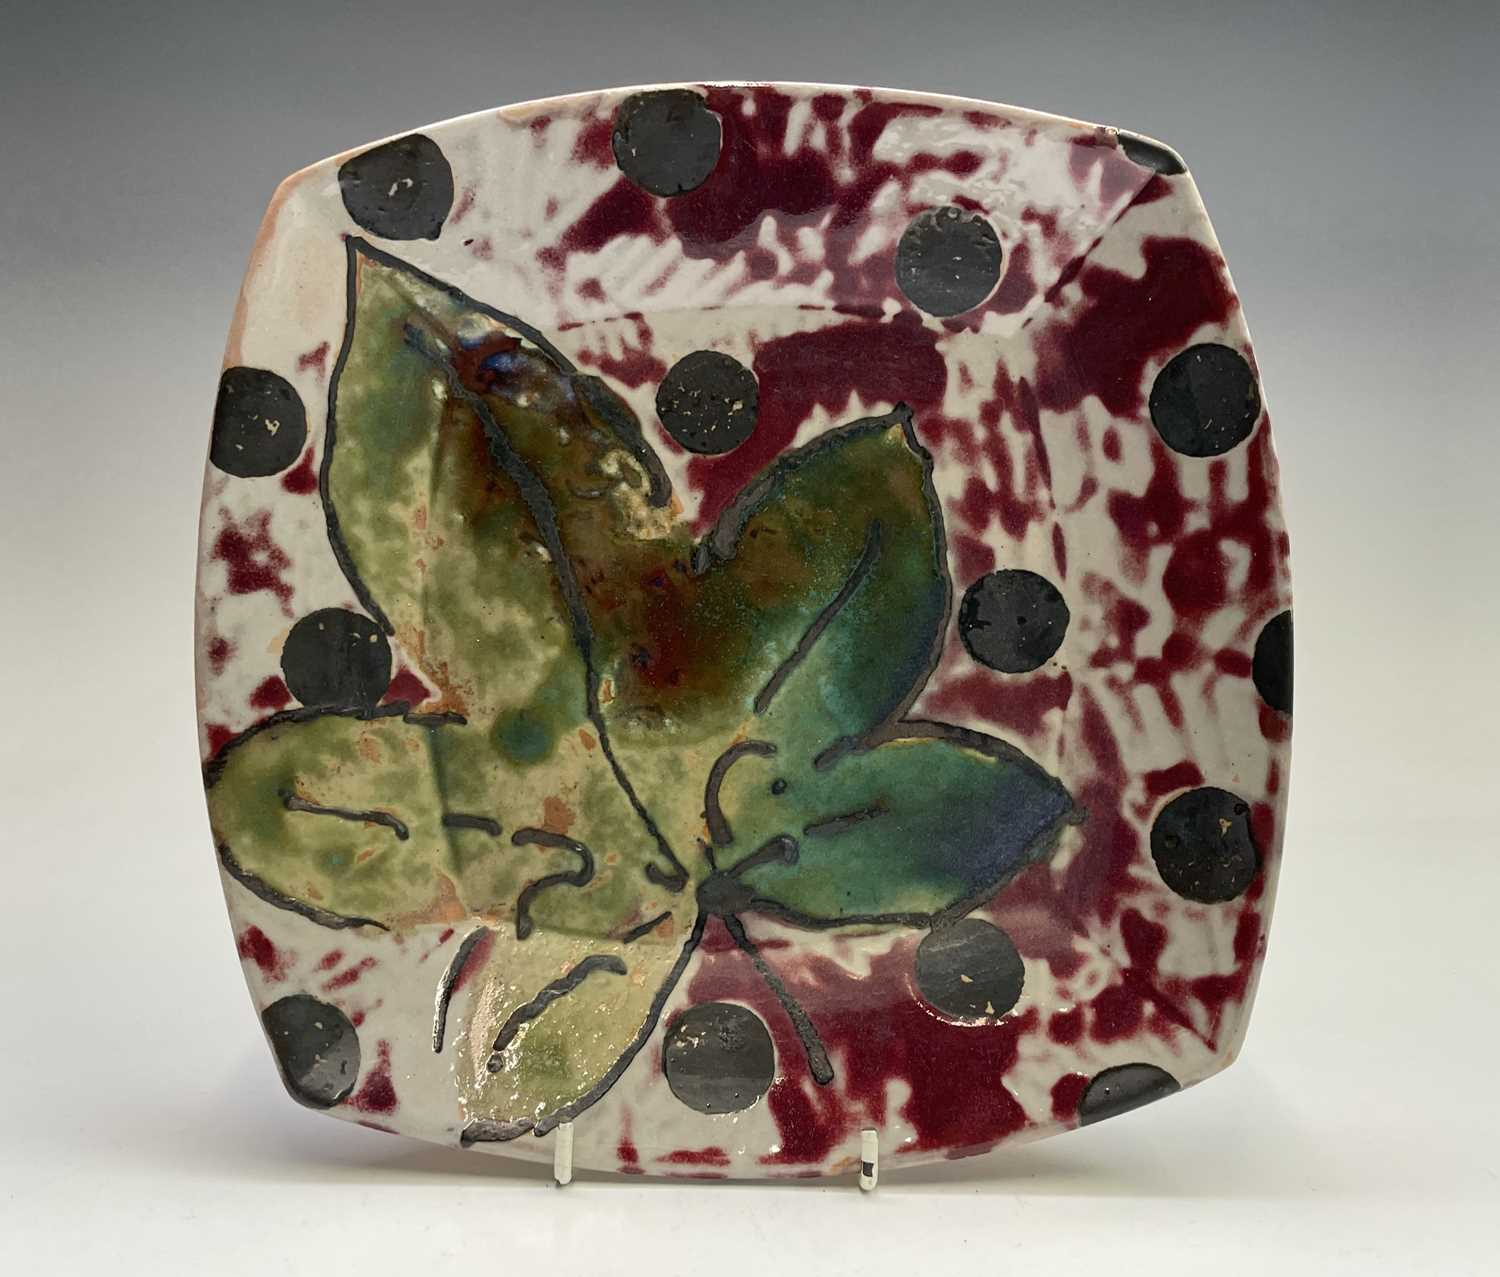 Janice TCHALENKO (1942-2018) Square dish Monogrammed 25.5cmCondition report: We can see no condition